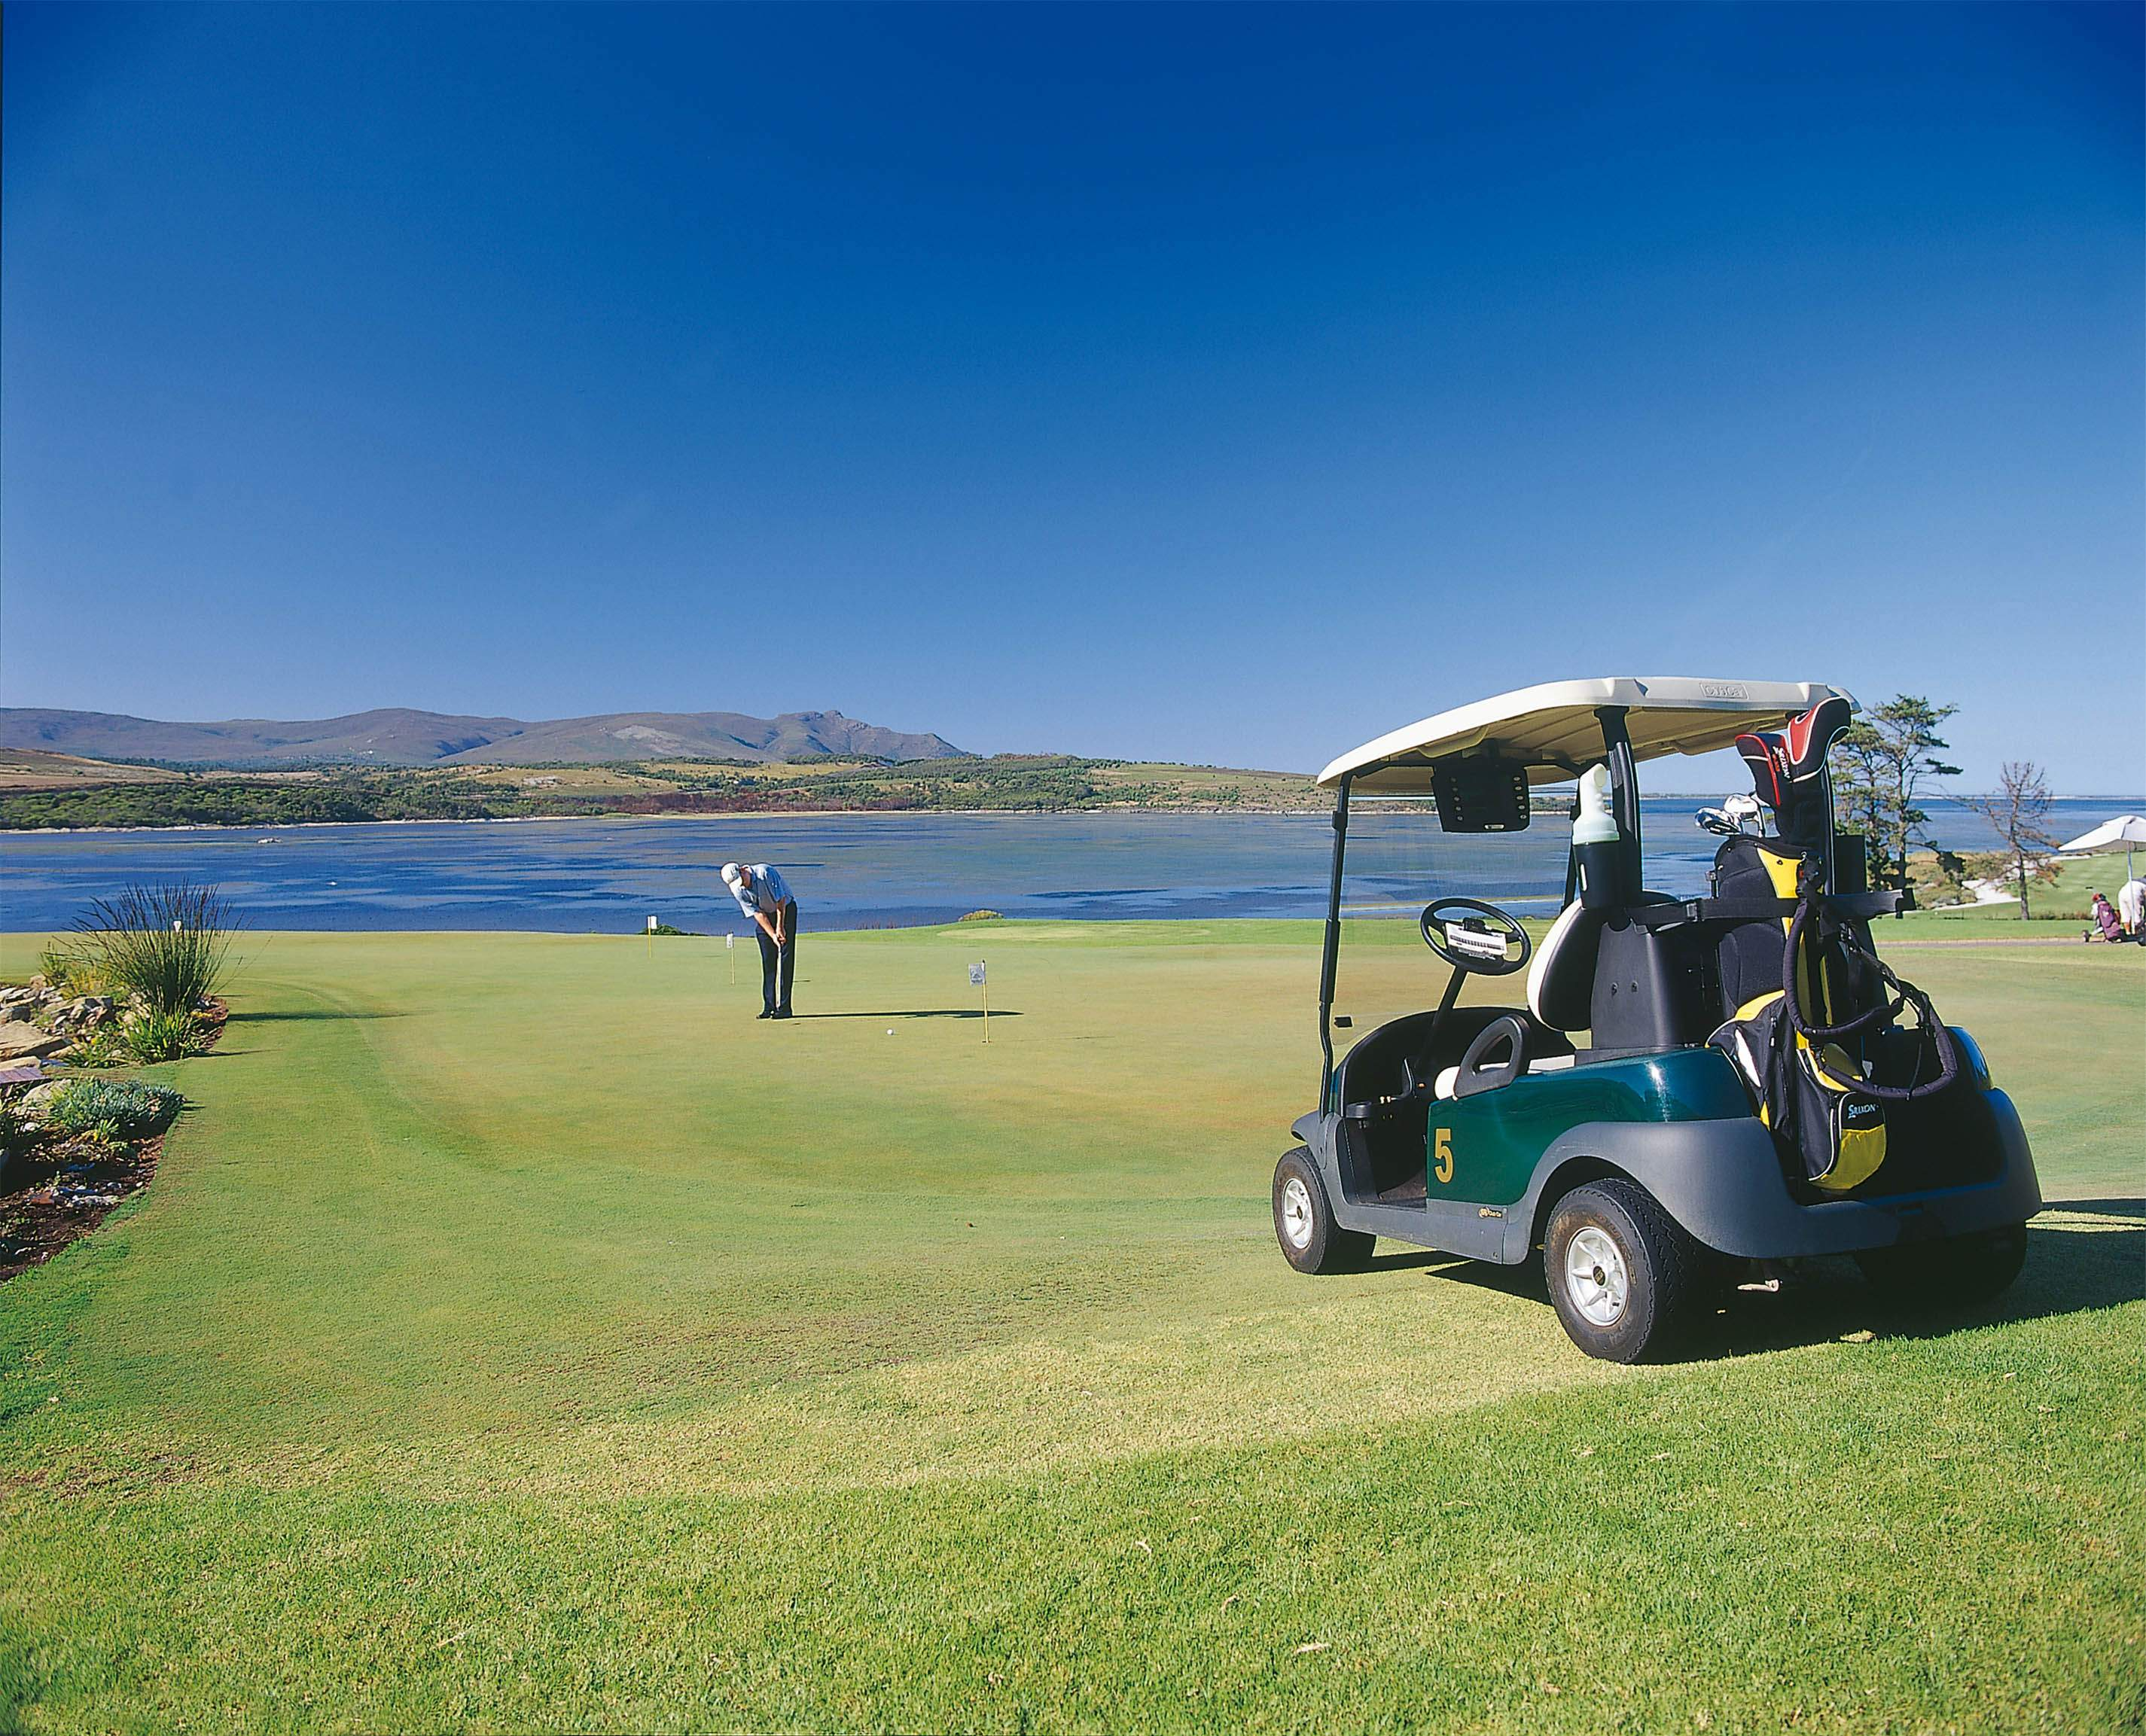 First hand golf course review of Arabella putting green by Chaka Travel